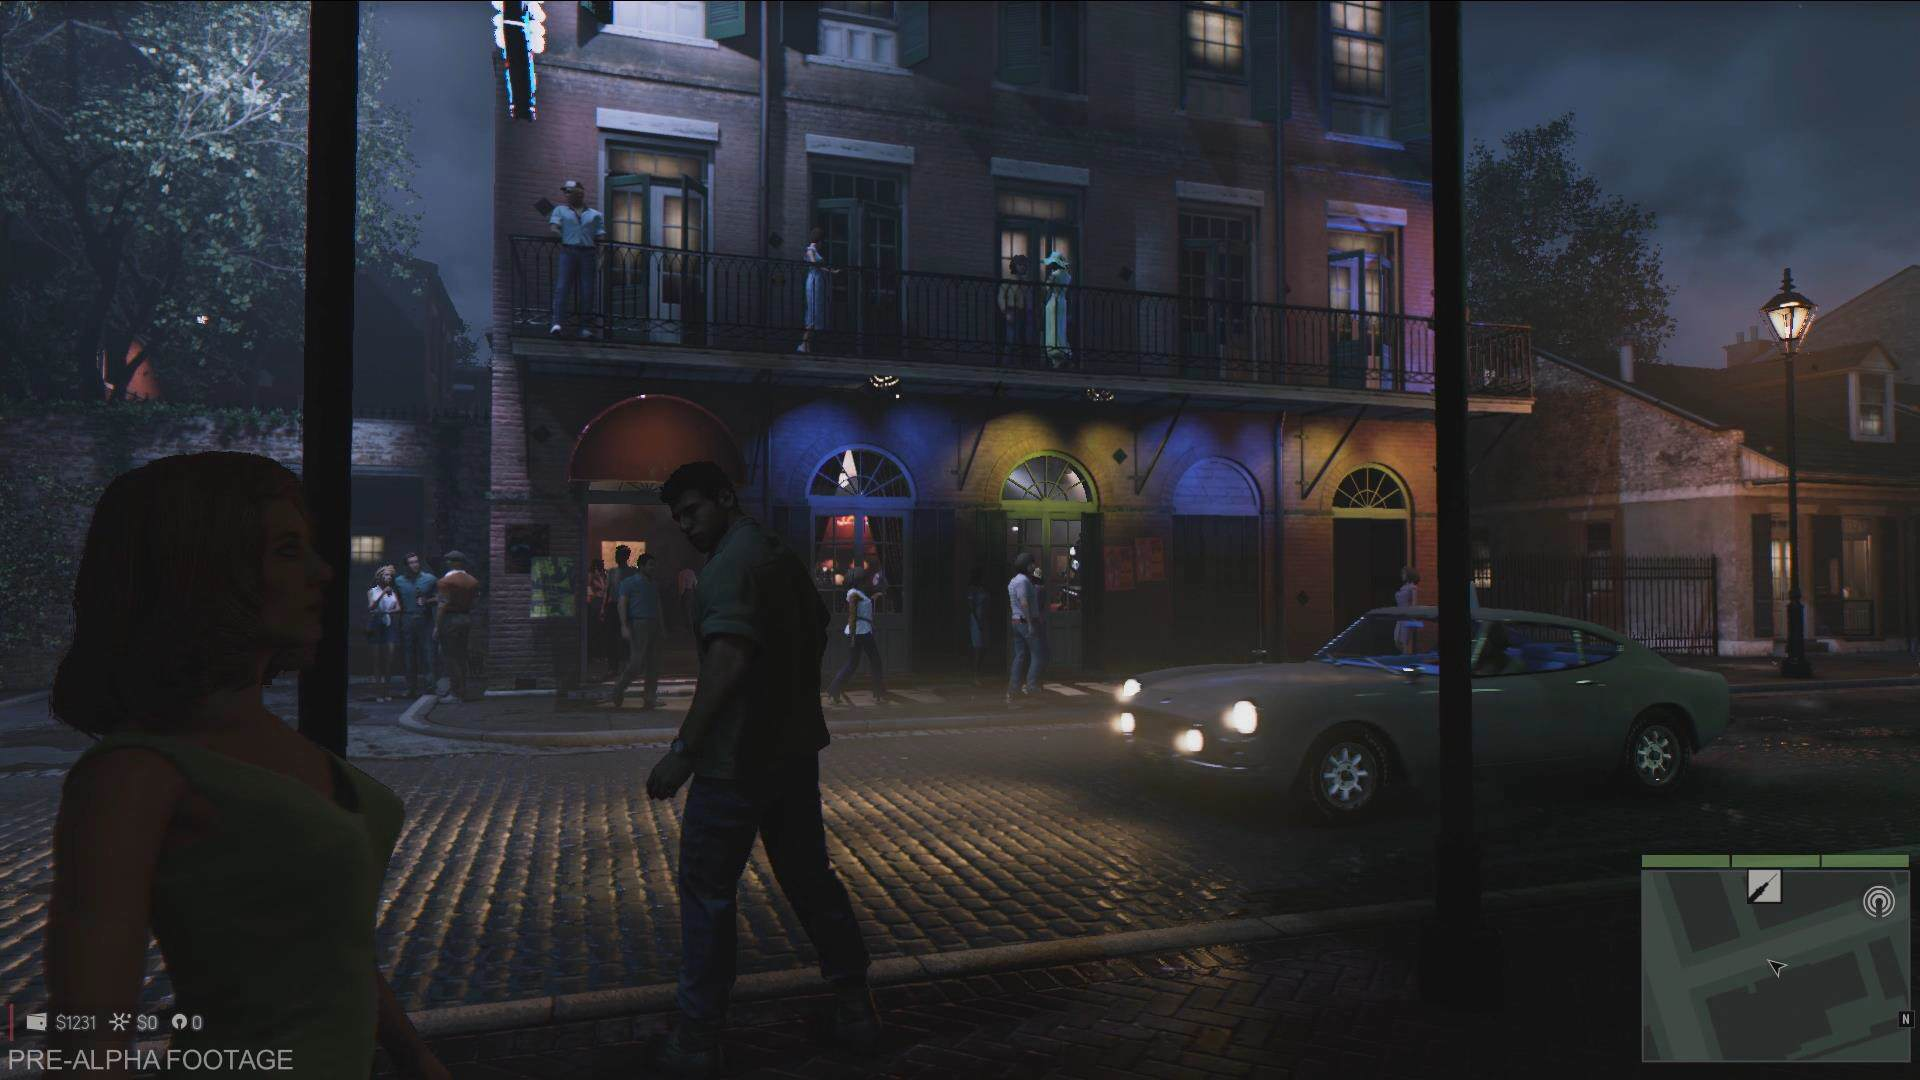 4 aSkvg7h New Mafia 3 Screens Show Off The Games Impressive World